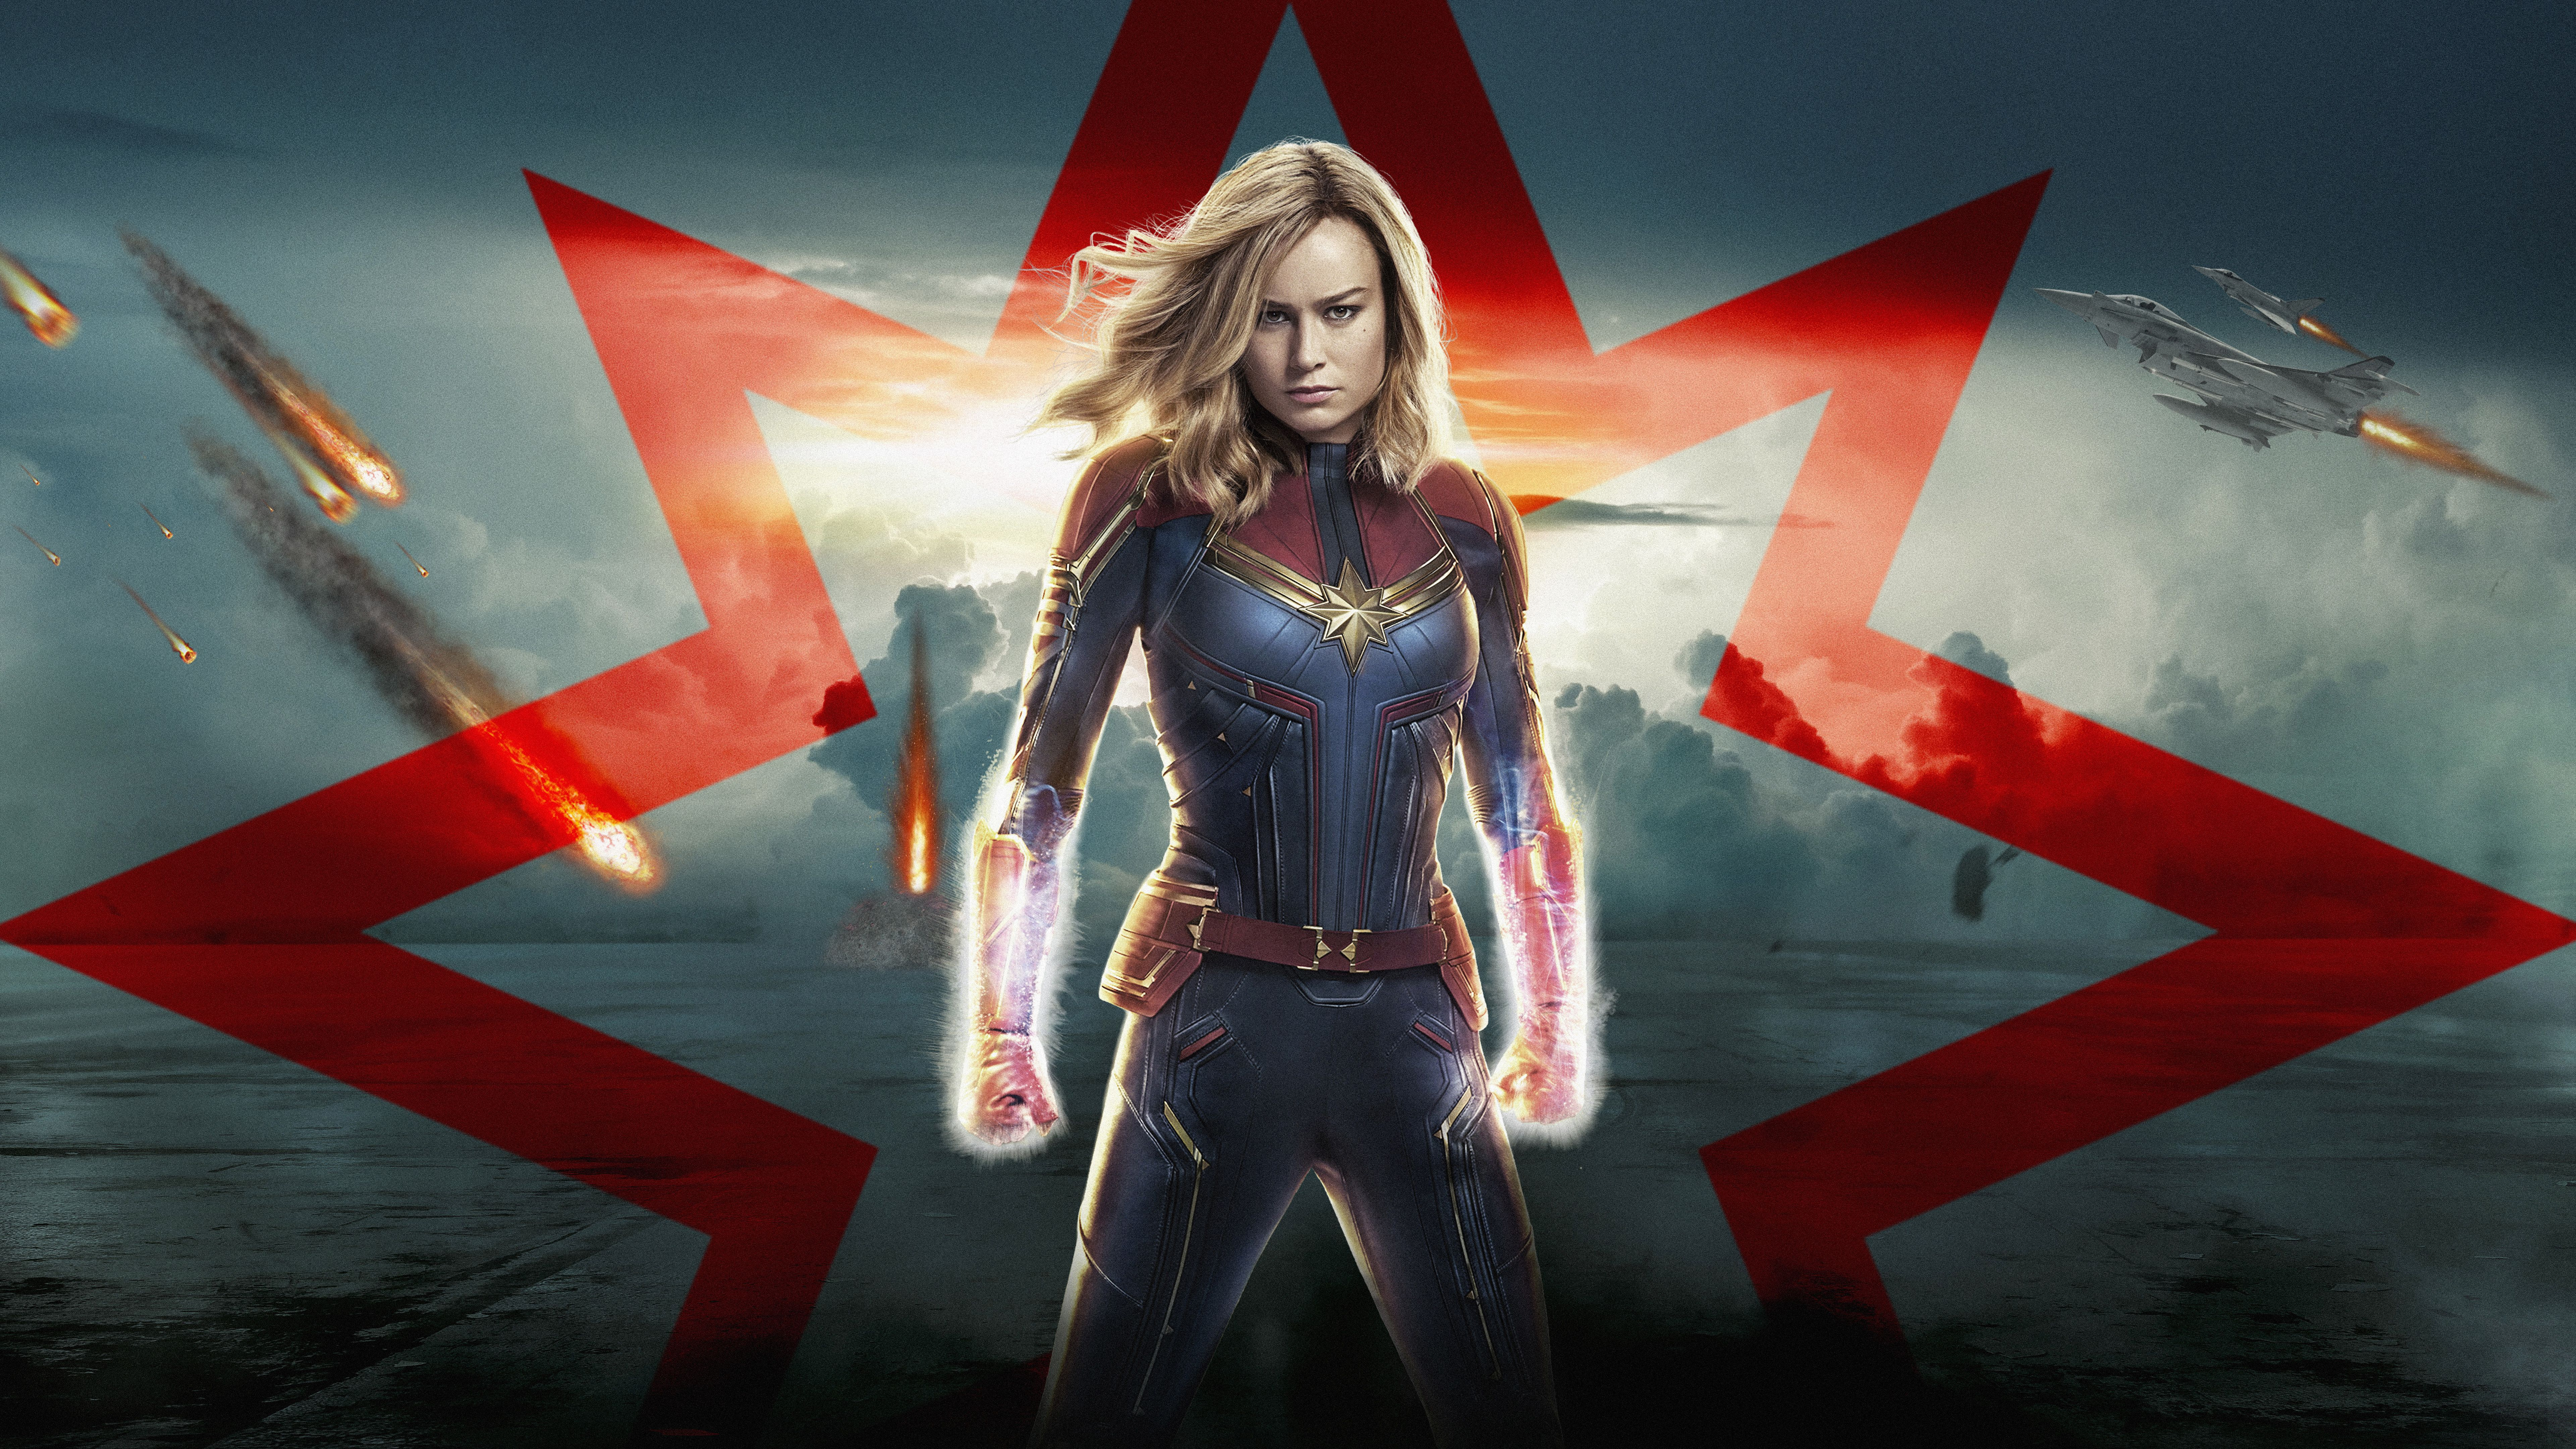 7680x4320 Captain Marvel 4K 8K 2019 Wallpapers | HD Wallpapers | ID #27275